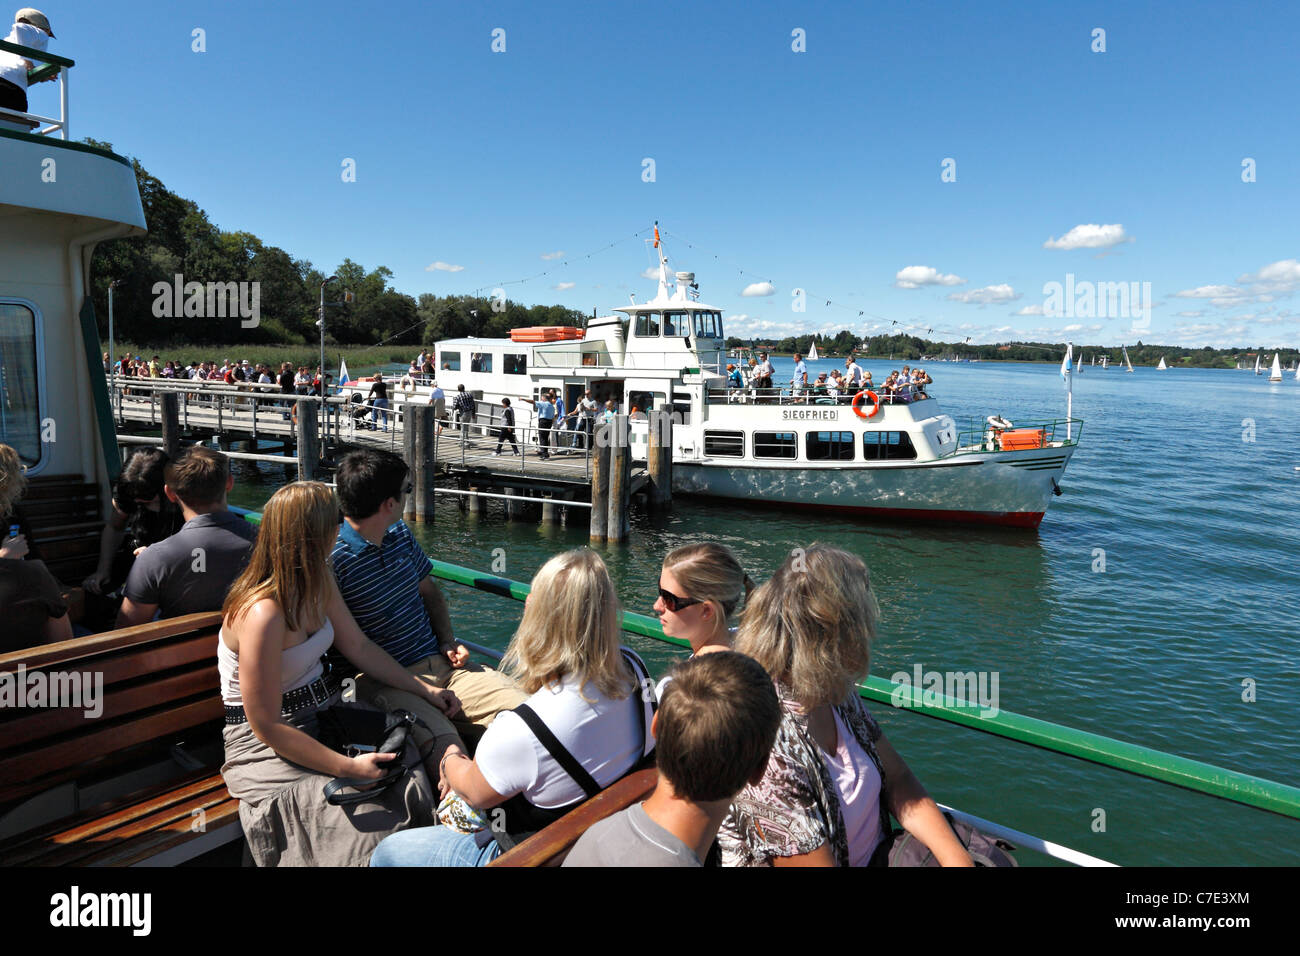 Passengers on a Chiemsee Ferry Boat at the Herreninsel, Chiemgau Upper Bavaria Germany - Stock Image